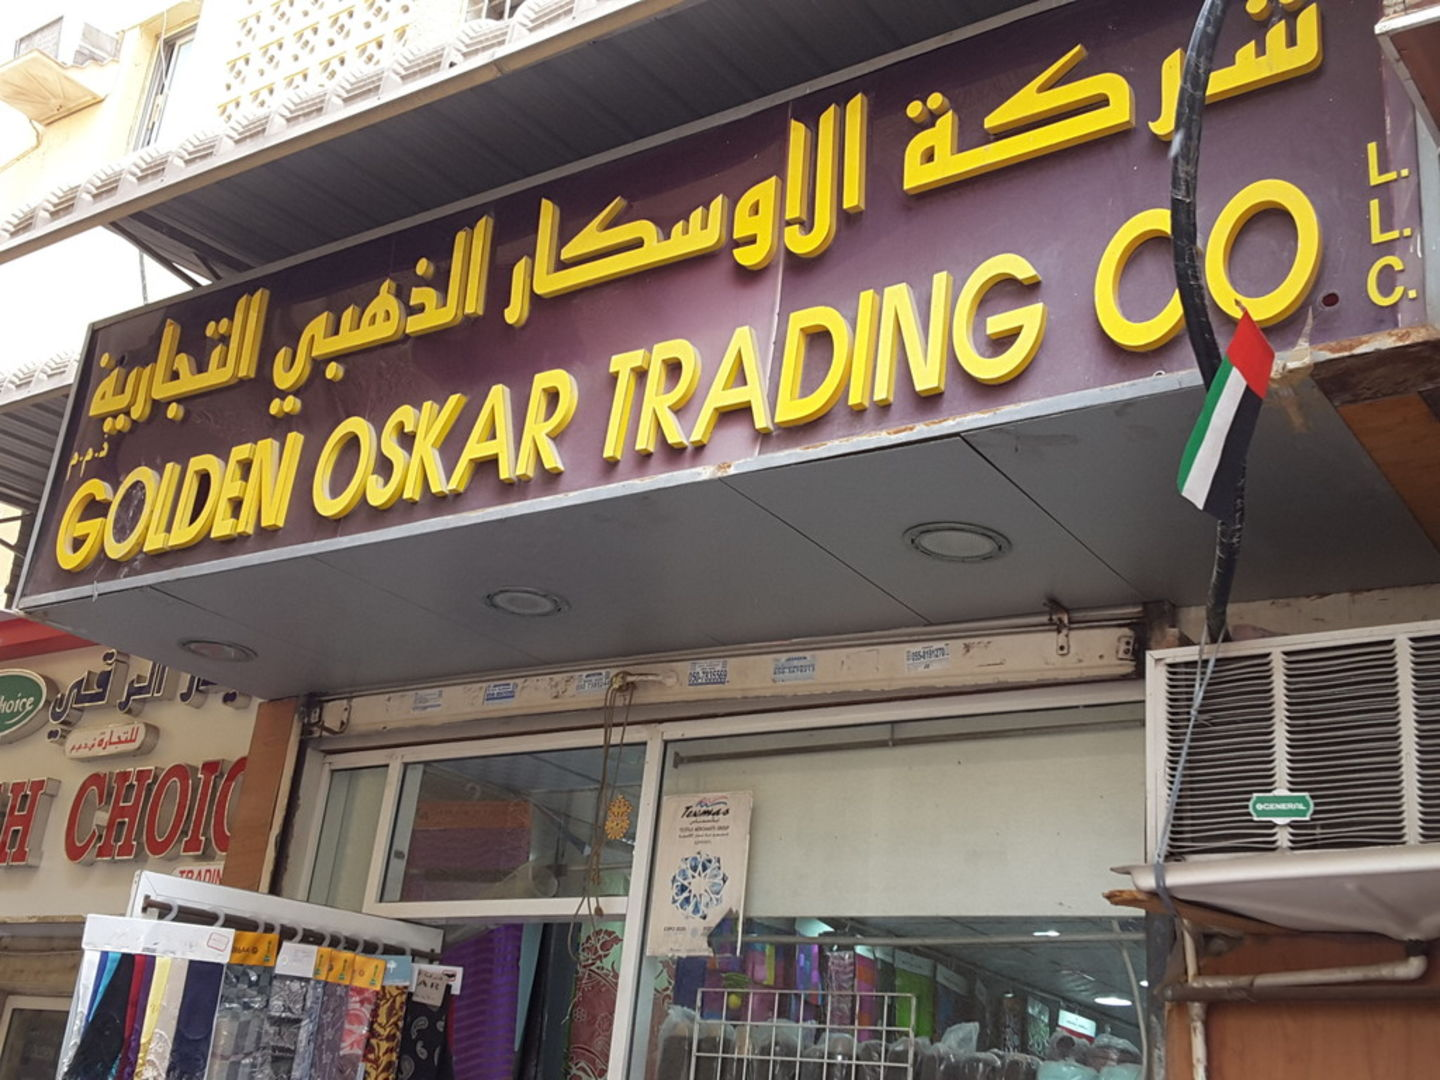 Walif-business-golden-oskar-trading-co-1